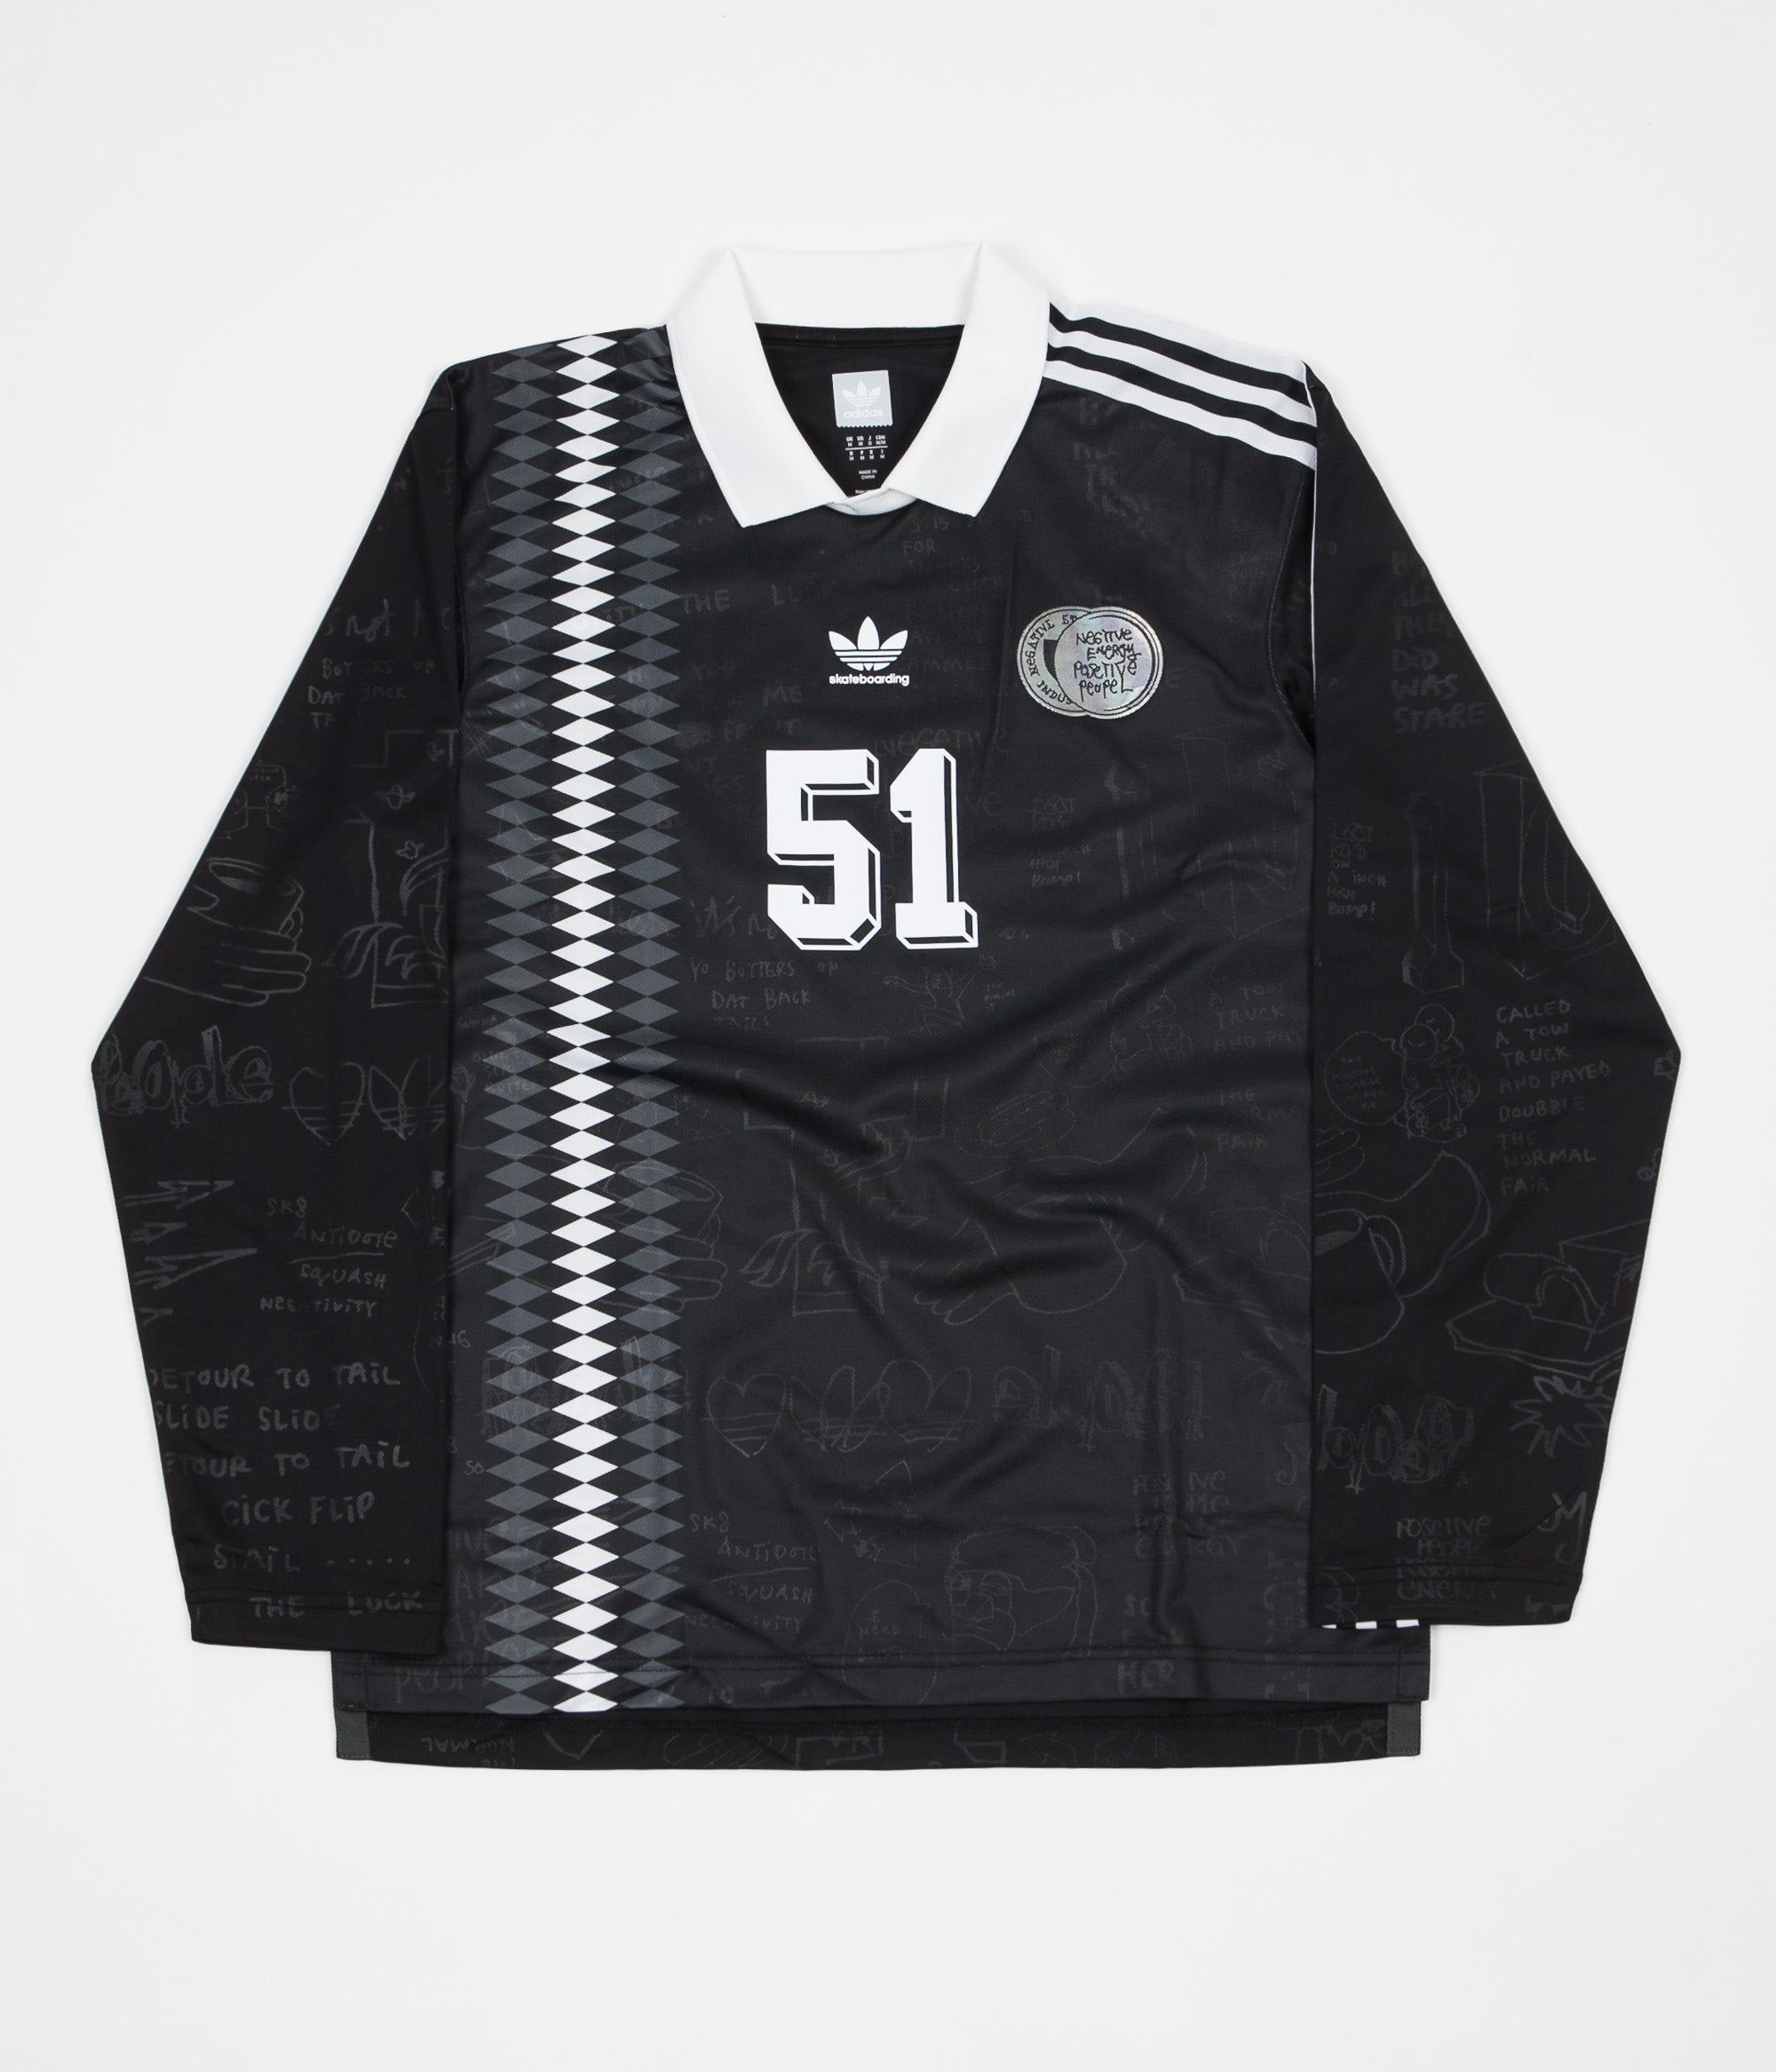 Adidas Johnson Jersey - Black / White / DGH Solid Grey